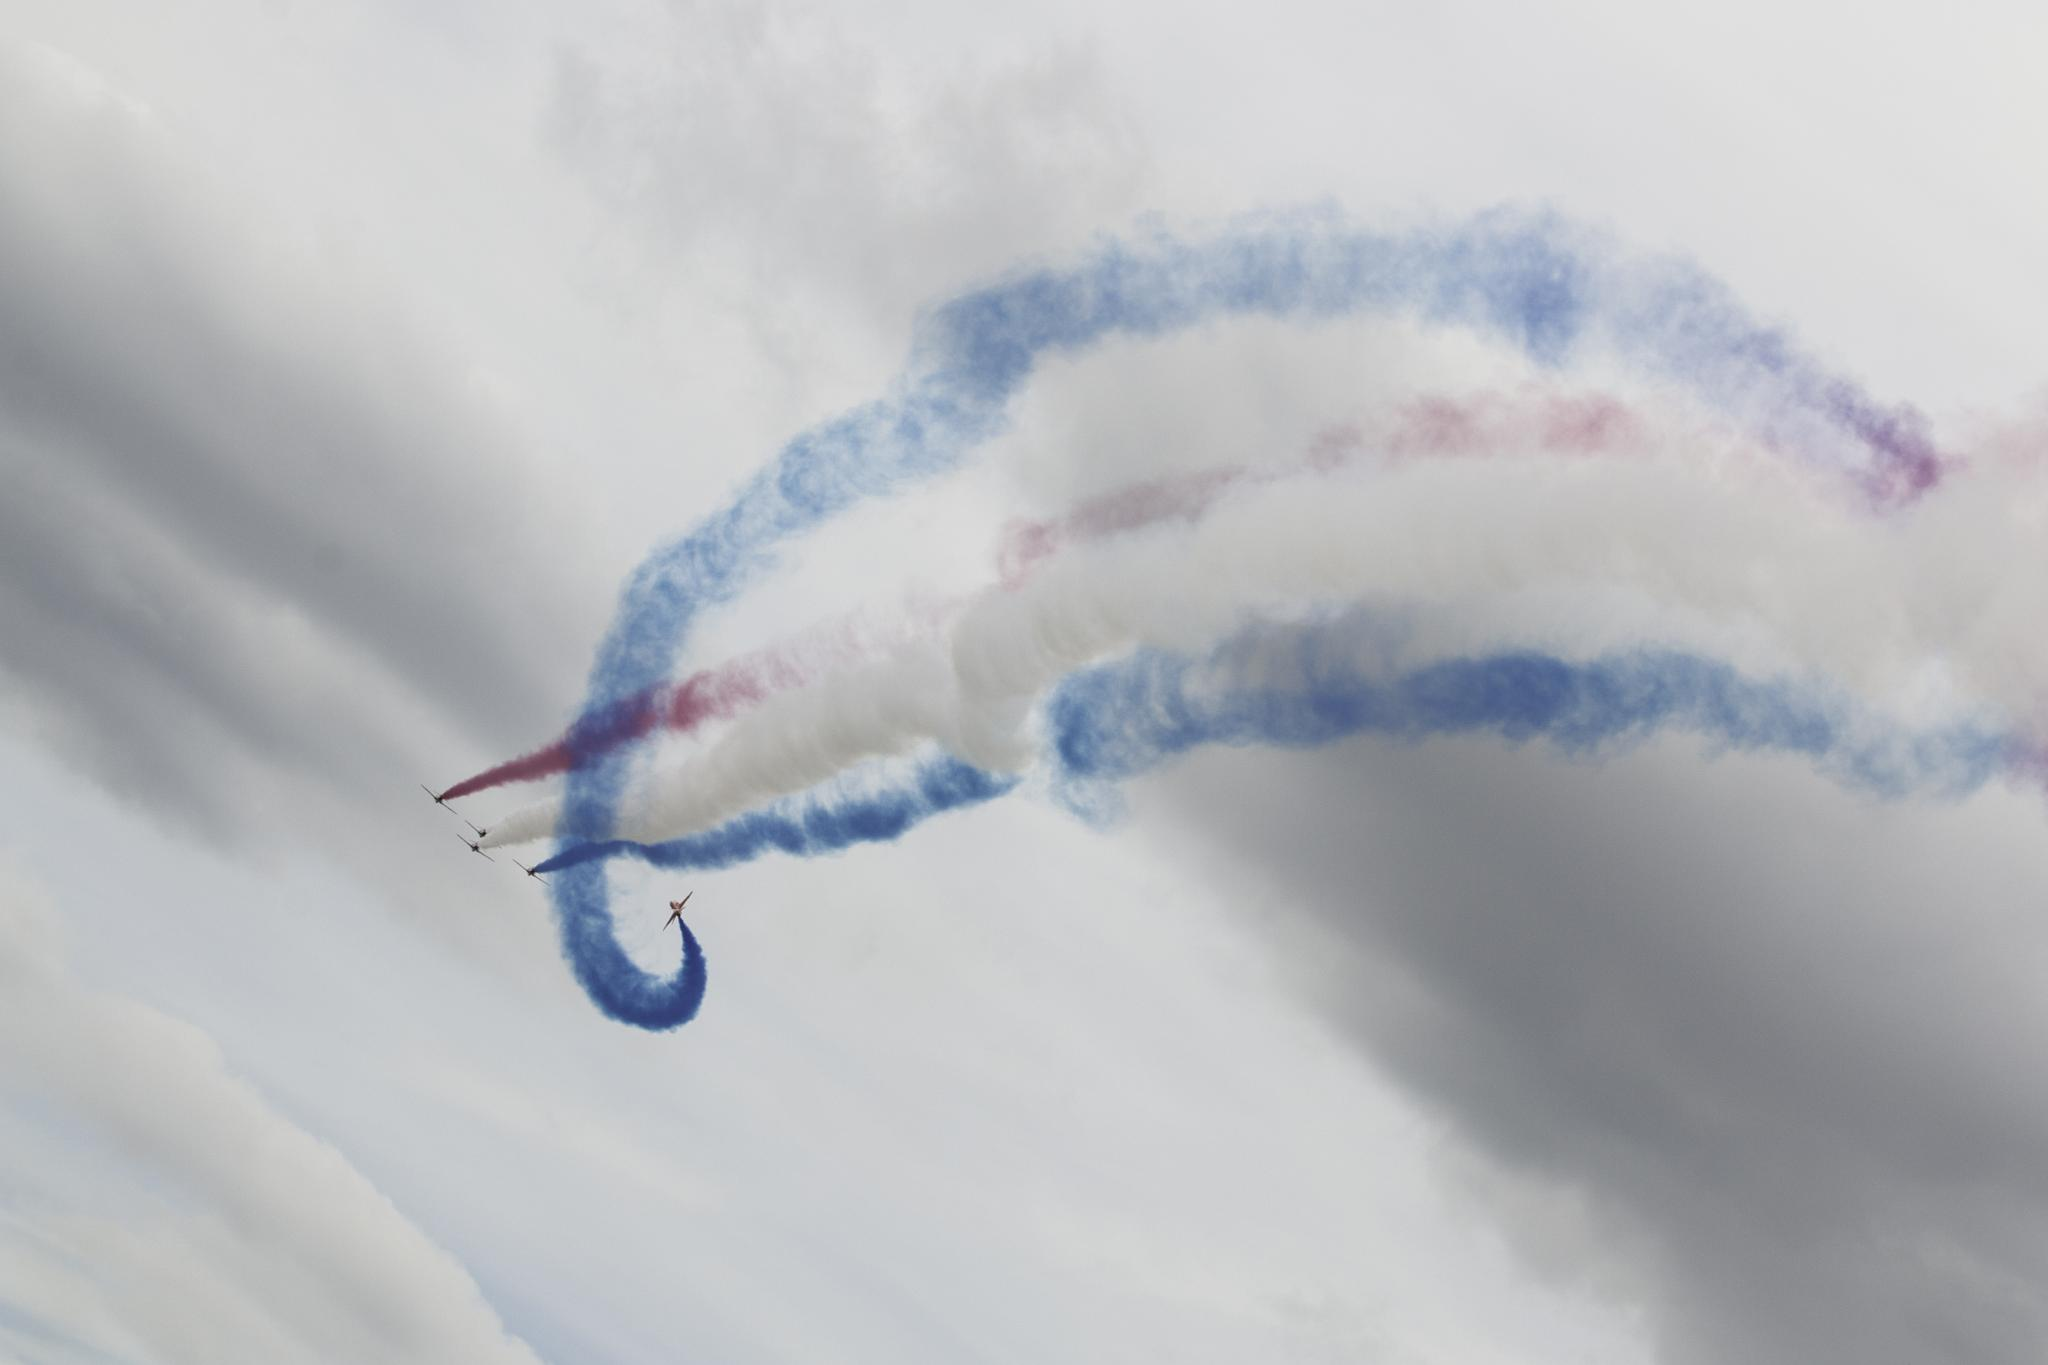 Red Arrows by Gareth Sawbridge